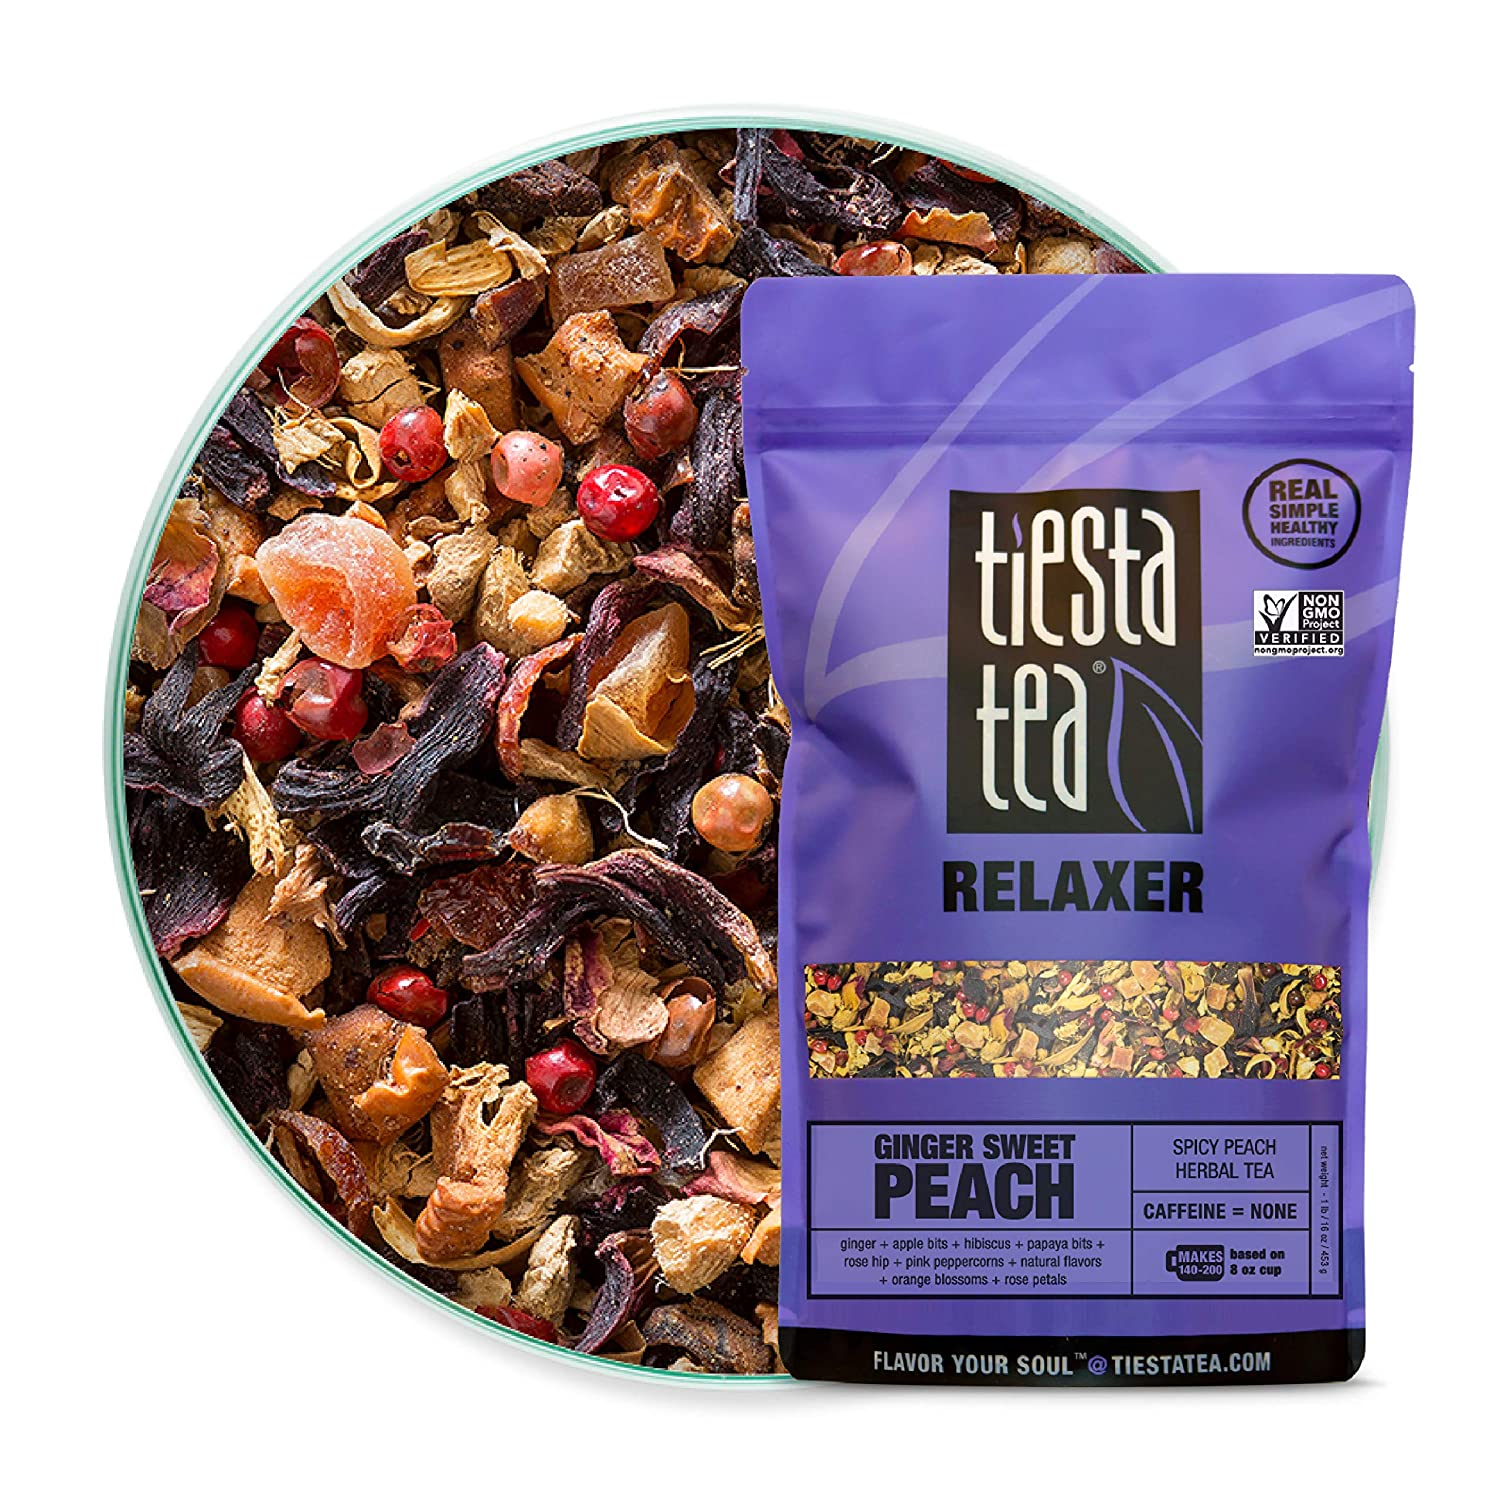 Tiesta Tea | Ginger Sweet Peach, Loose Leaf Spicy Peach Herbal Tea | All Natural, Caffeine Free, Stress Relief, Relax, Sleep Tea, Calming | 16oz Bulk Bag - 200 Cups | Ginger Herbal Tea